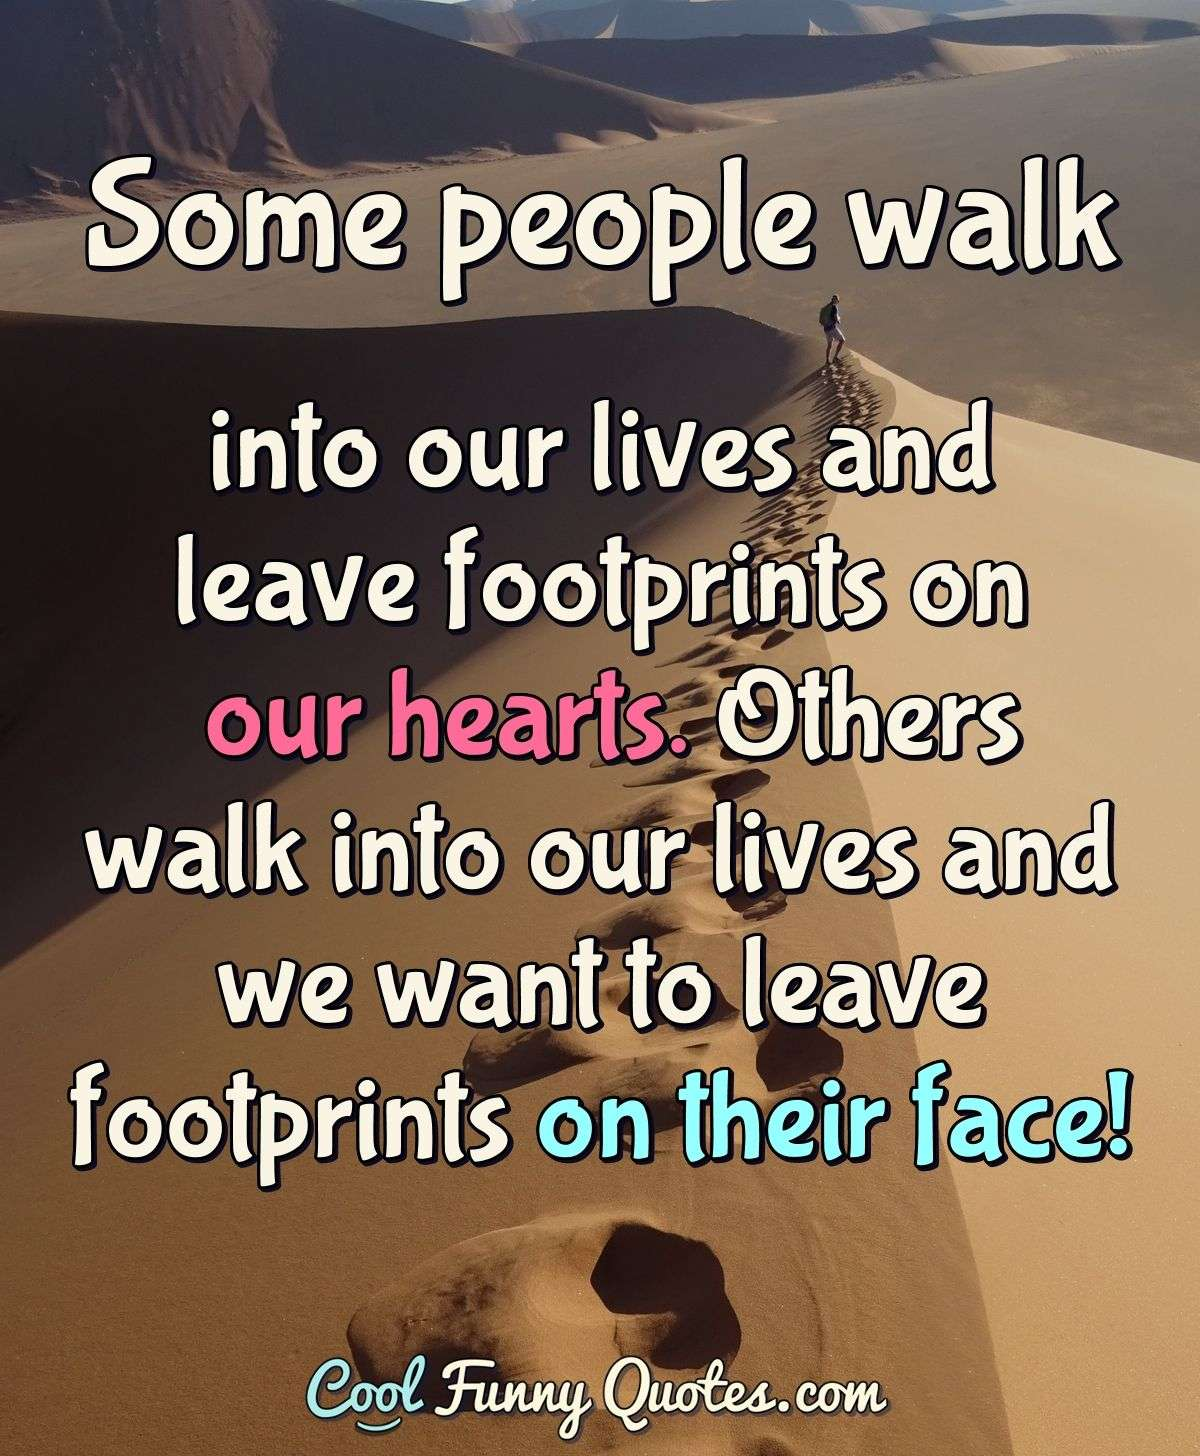 Some people walk into our lives and leave footprints on our hearts. Others walk into our lives and we want to leave footprints on their face! - Anonymous